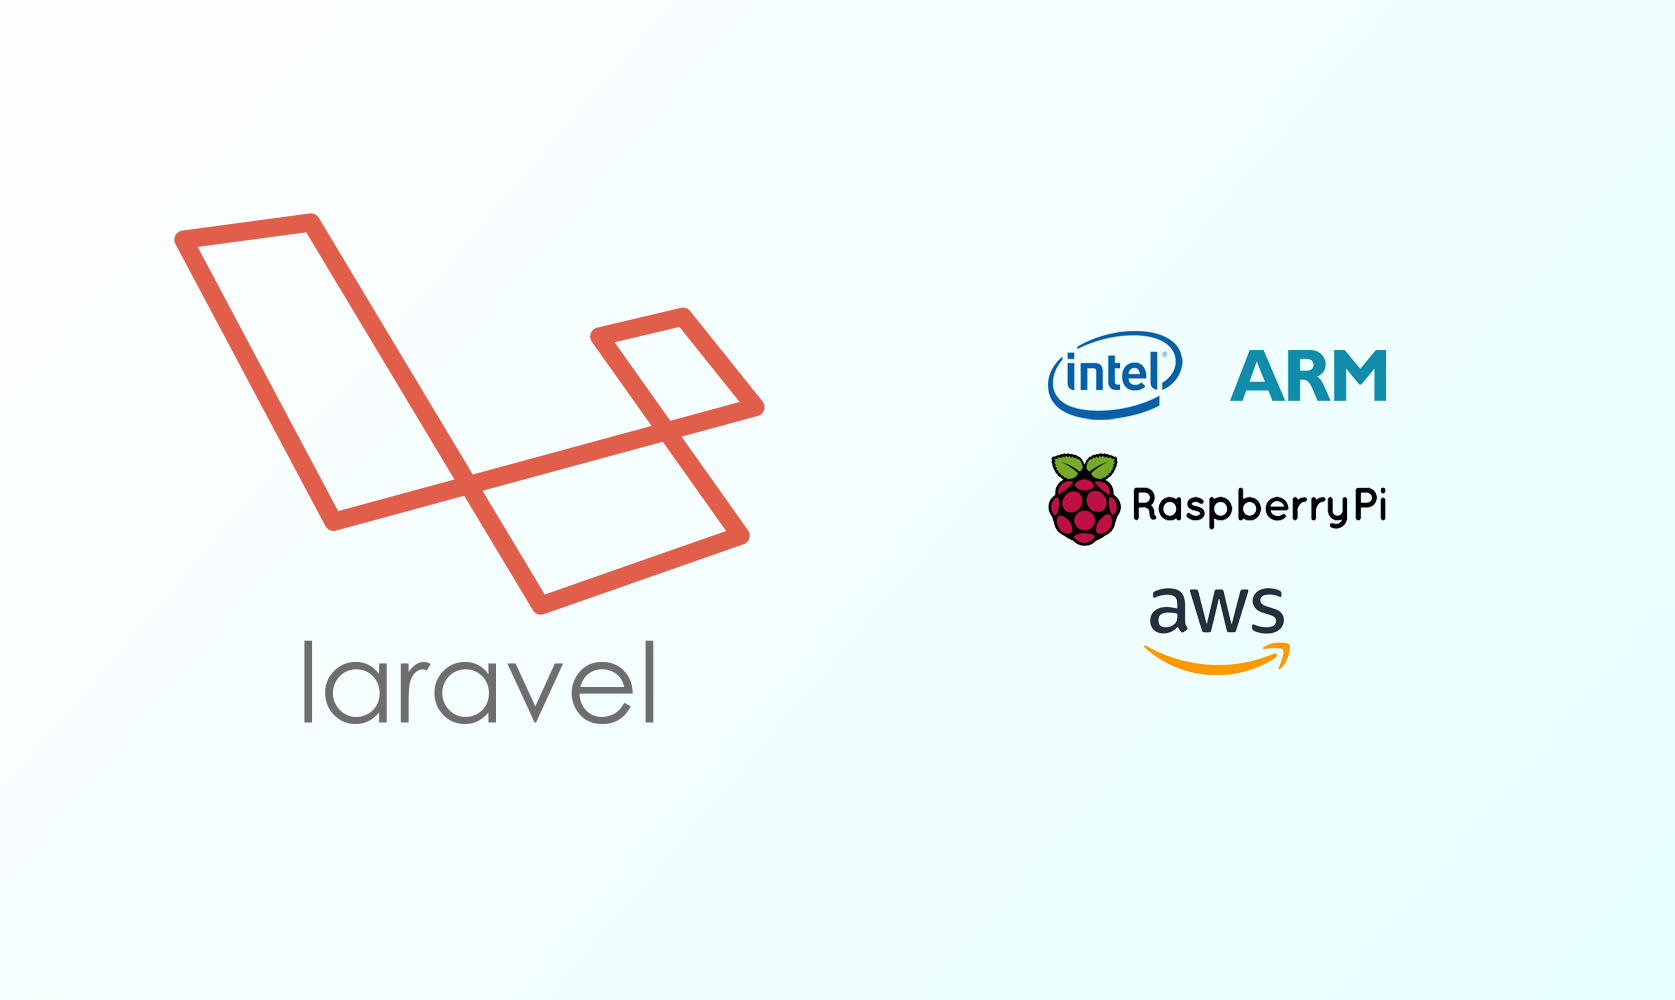 Get your Laravel/PHP App Running on ARM and x86 Servers